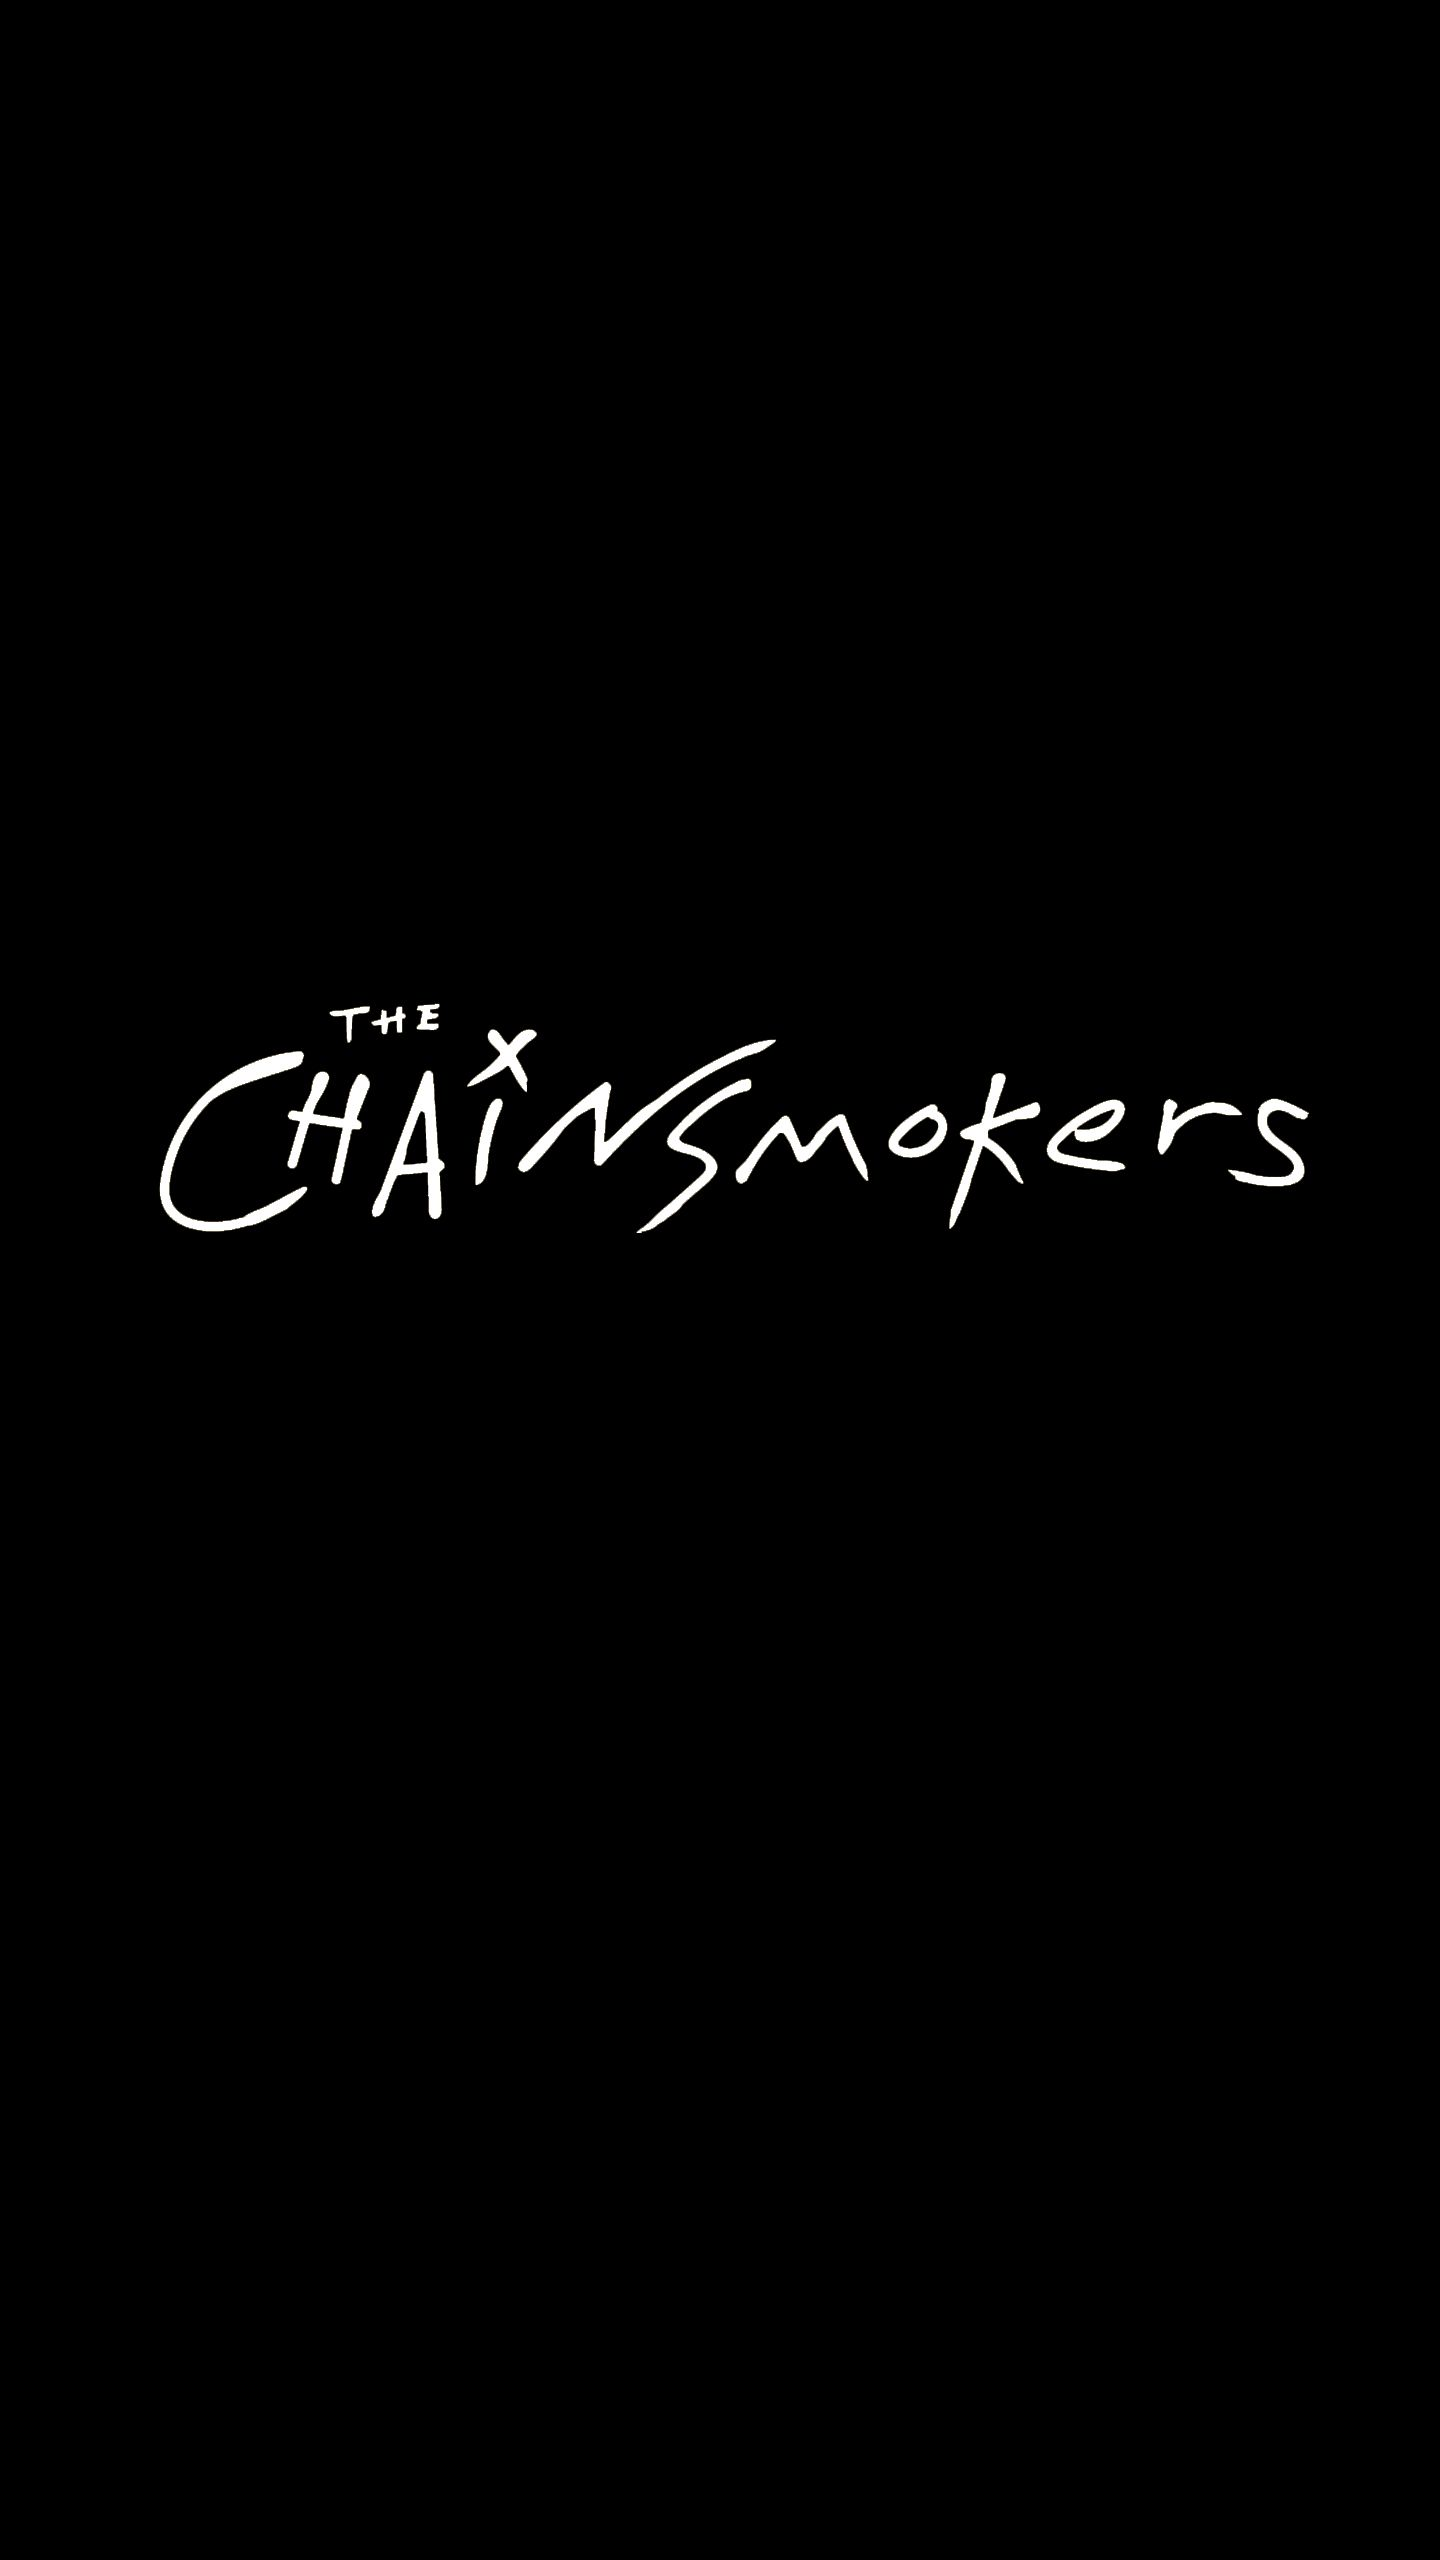 The Chainsmokers Wallpaper 916 QHD The Chainsmokers in 1440x2560